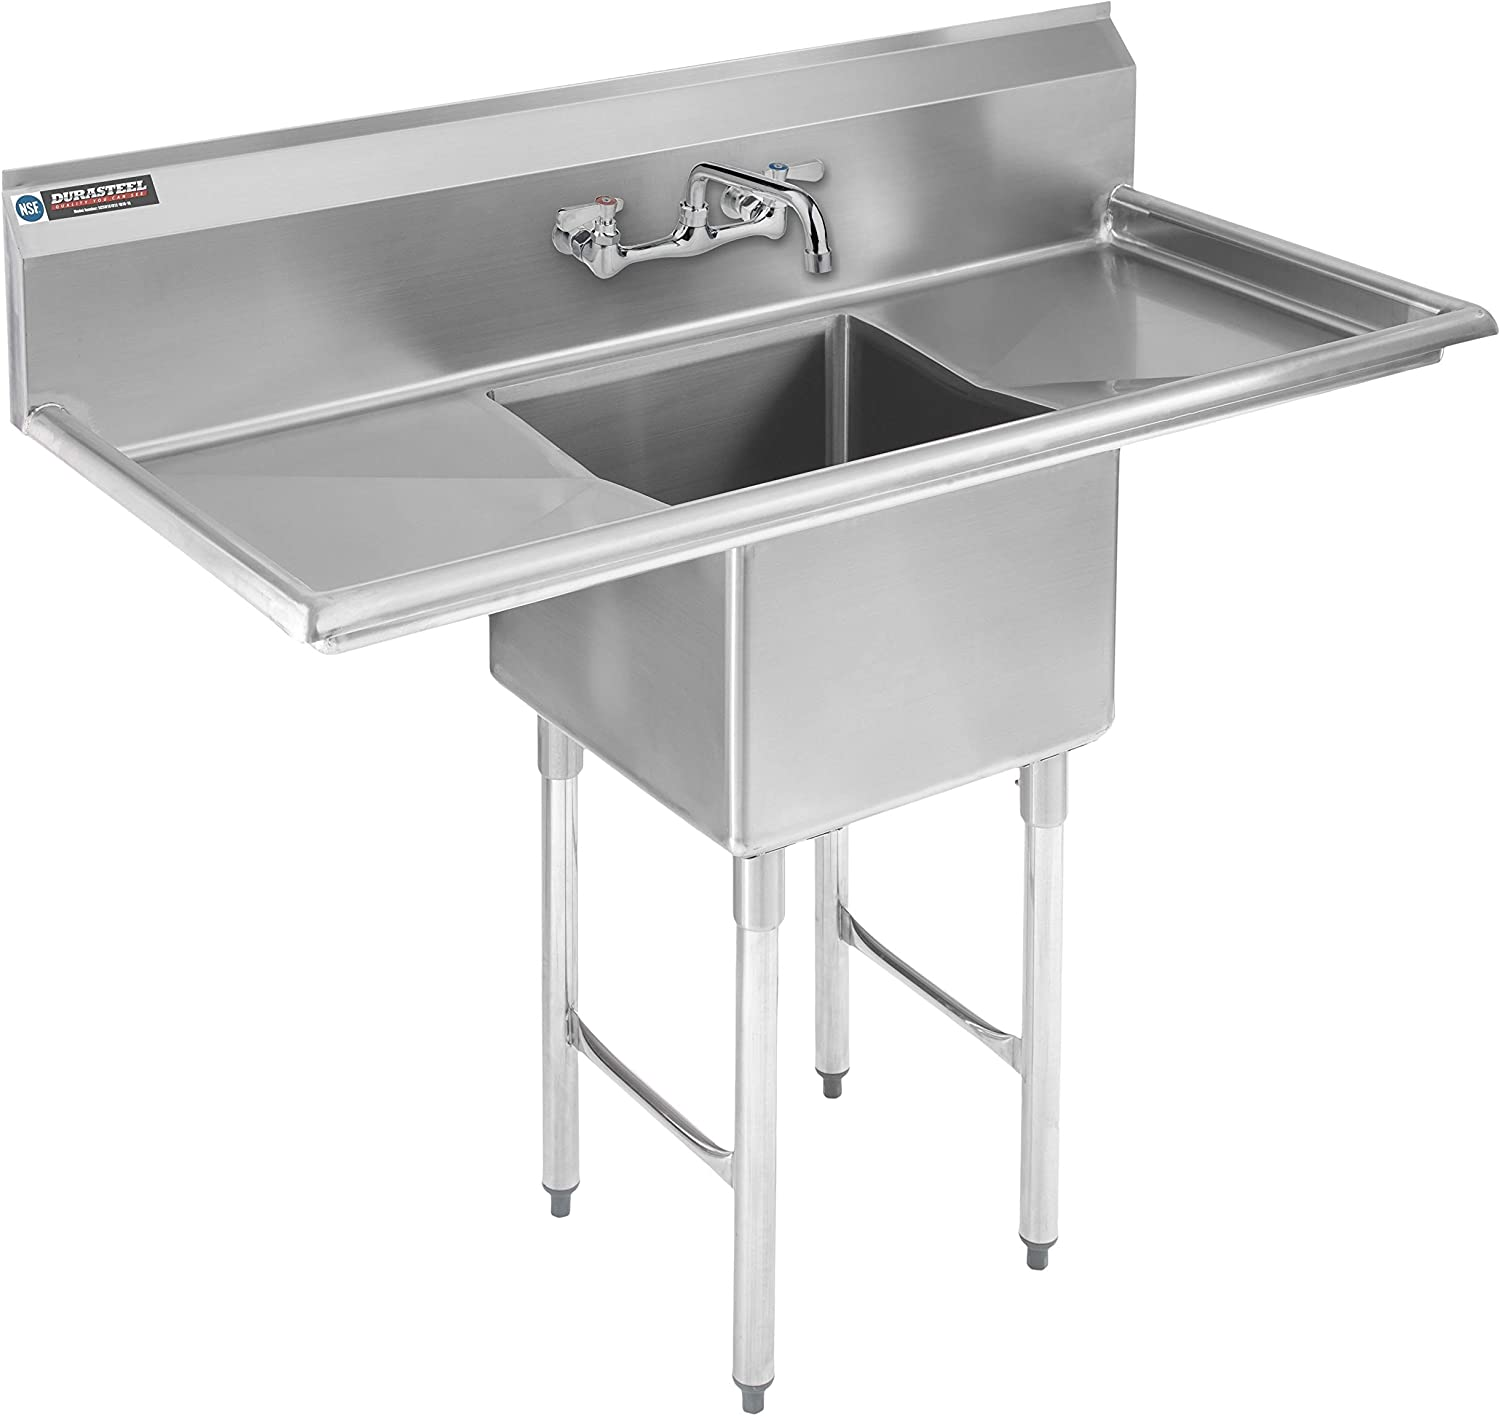 Stainless Steel Kitchen Sink with Faucet - DuraSteel 1 Compartment Commercial Utility Sink w/ Double Drainboards -18